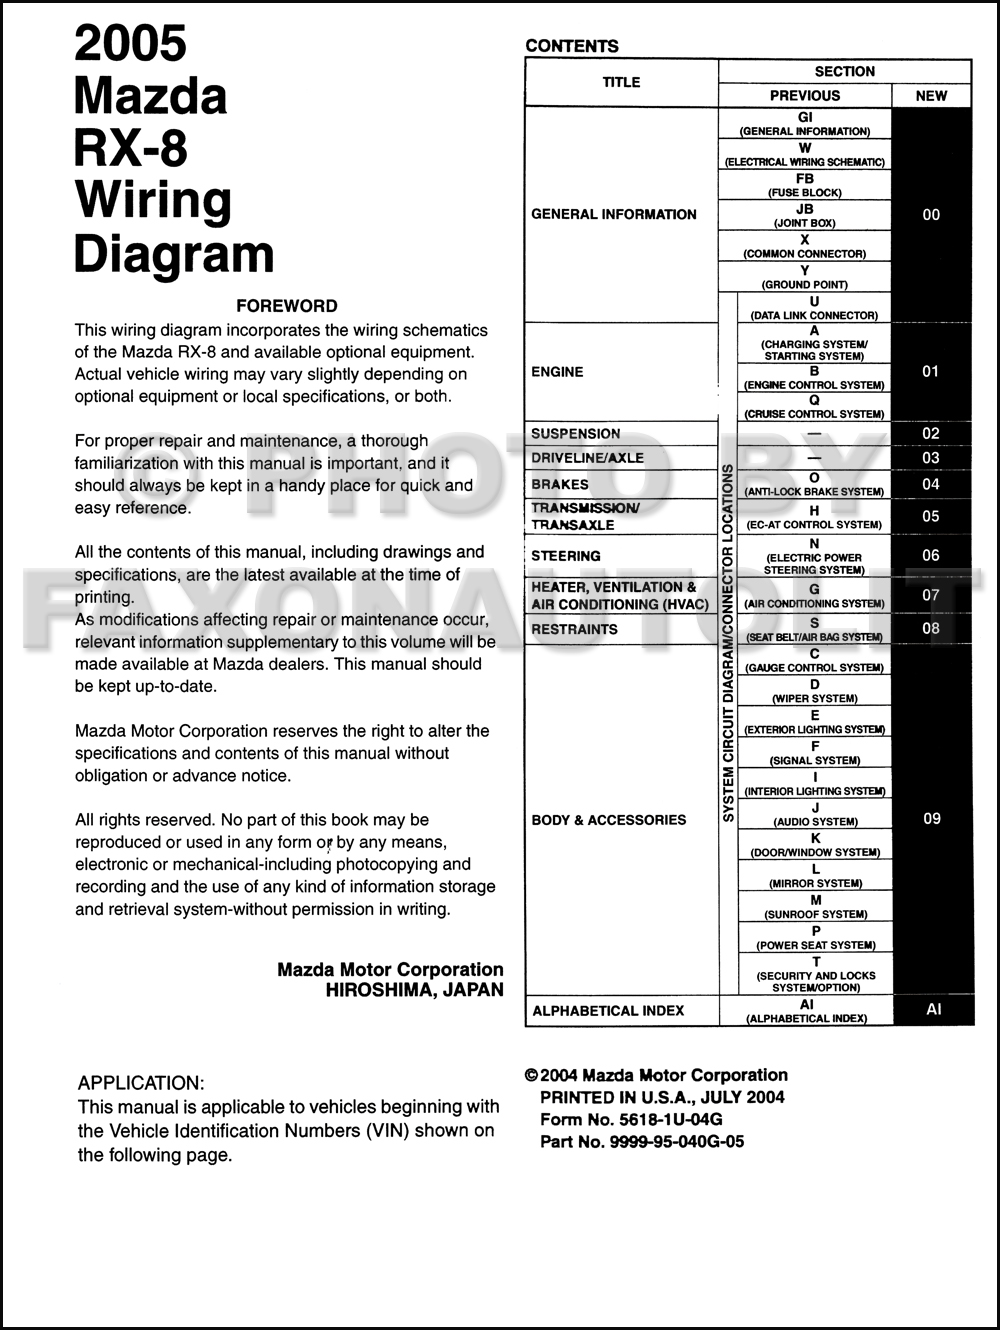 rx8 wiring diagram wiring diagram and schematic sr20de wiring diagram diagrams and schematics